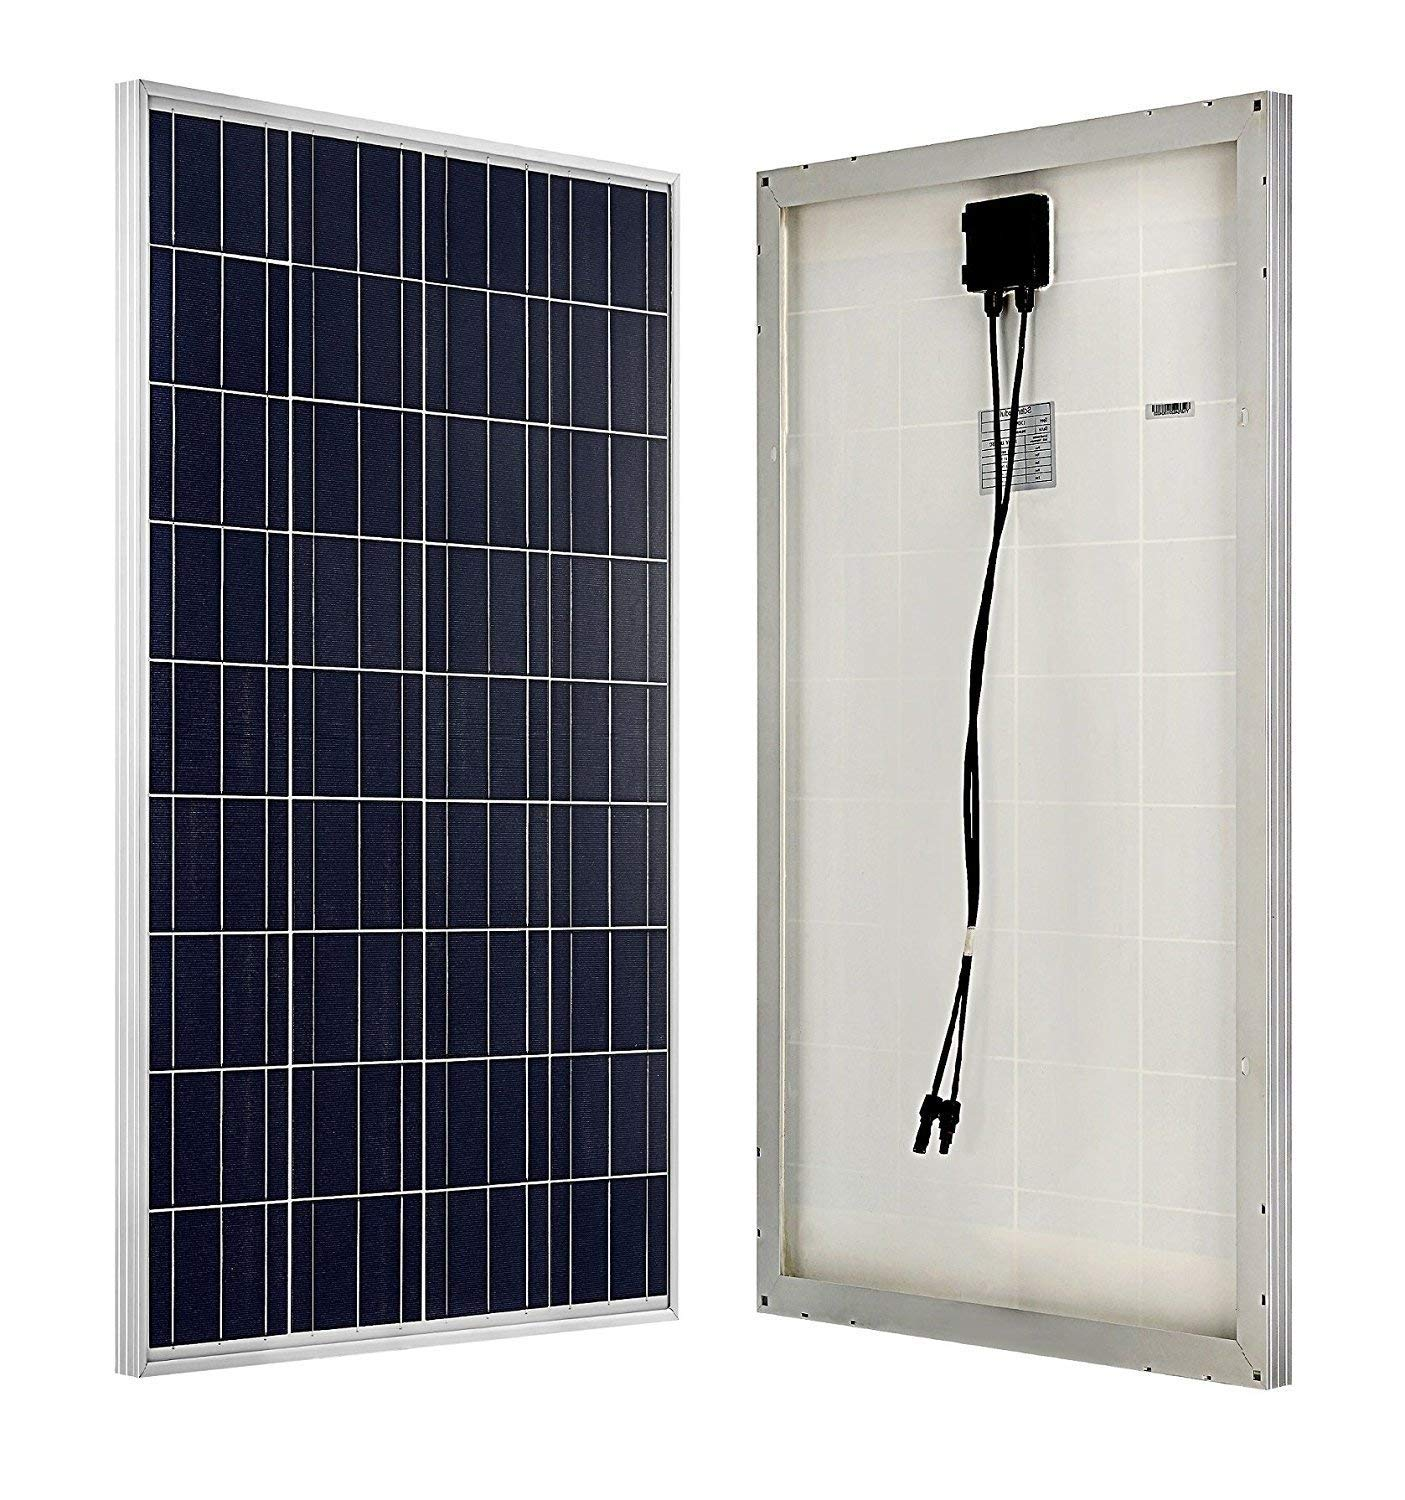 Eco Worthy 14kw Wind Solar Power 400w Turbine Information About Short Circuit Current Cell On The Site Http Generator 10pcs 100w Poly Panels 1500w 24v 110v Off Grid Inverter Cable